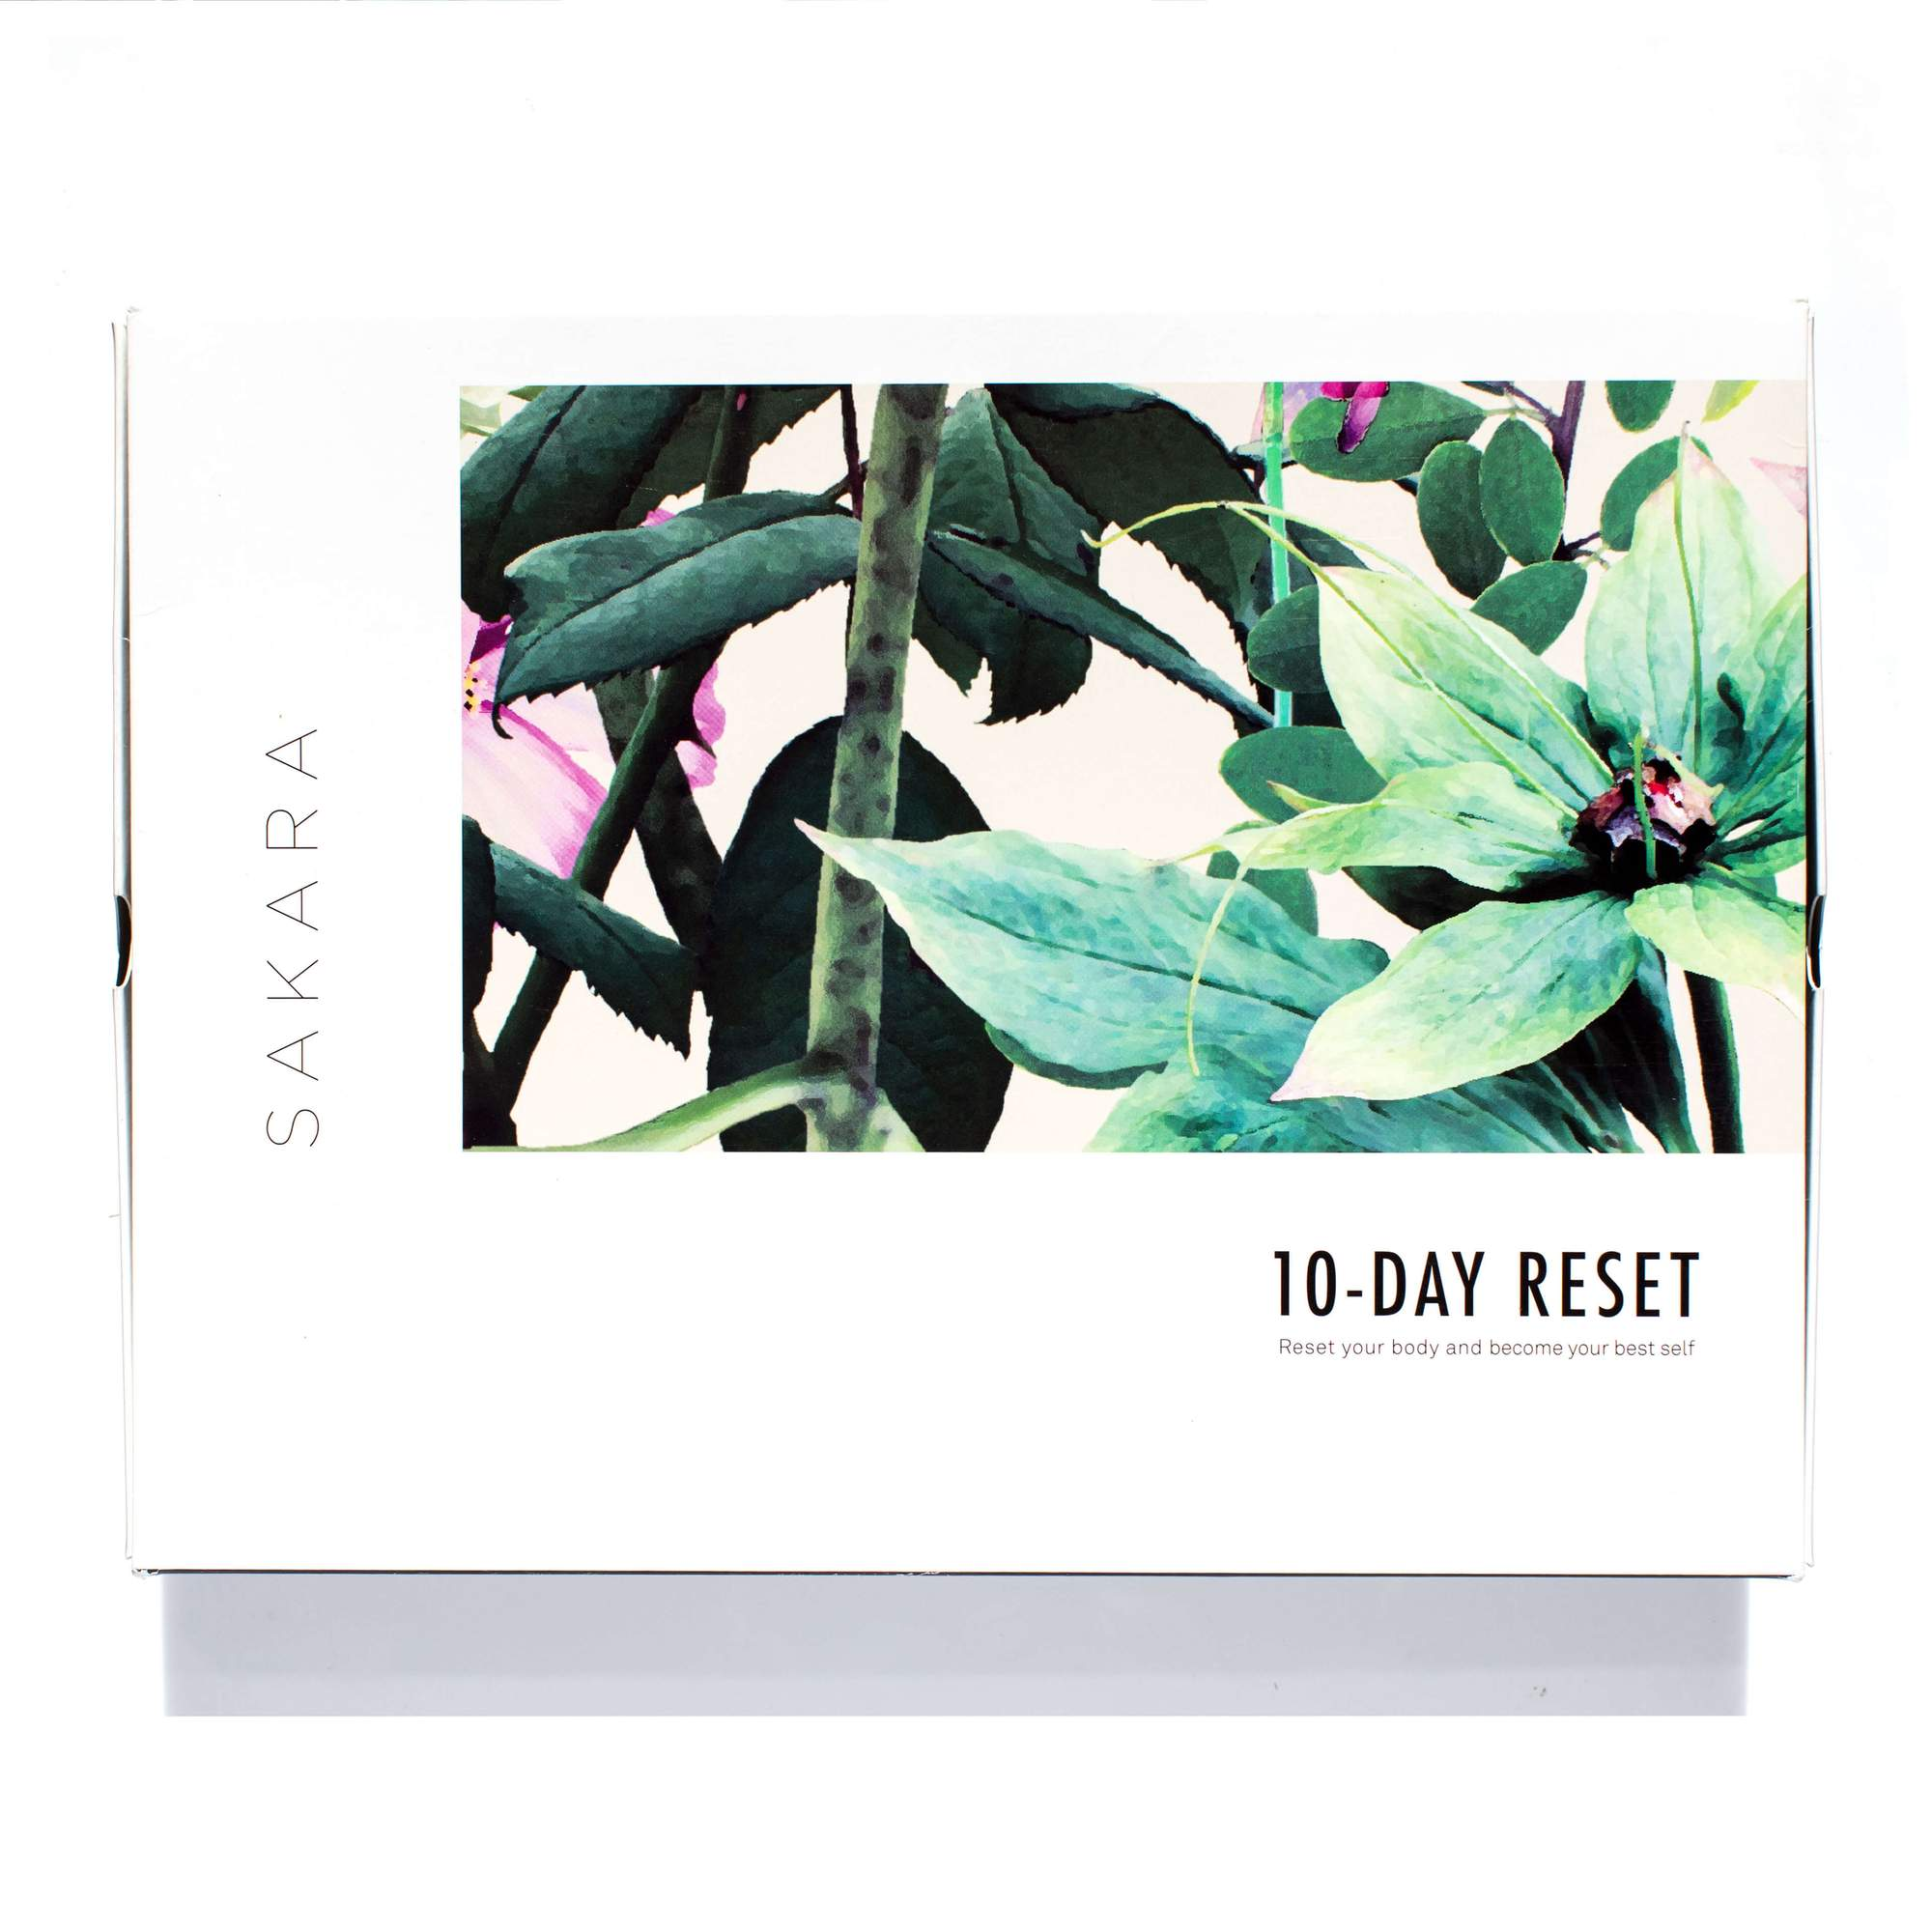 Sakara's 10 day reset kit , $195  This little box packs a big punch. As well as 20 recipes, it contains Sakara's signature products such as their cult Beauty Water, Detox Bars and Life Source smoothie powder. All the more reason to indulge over Christmas…!